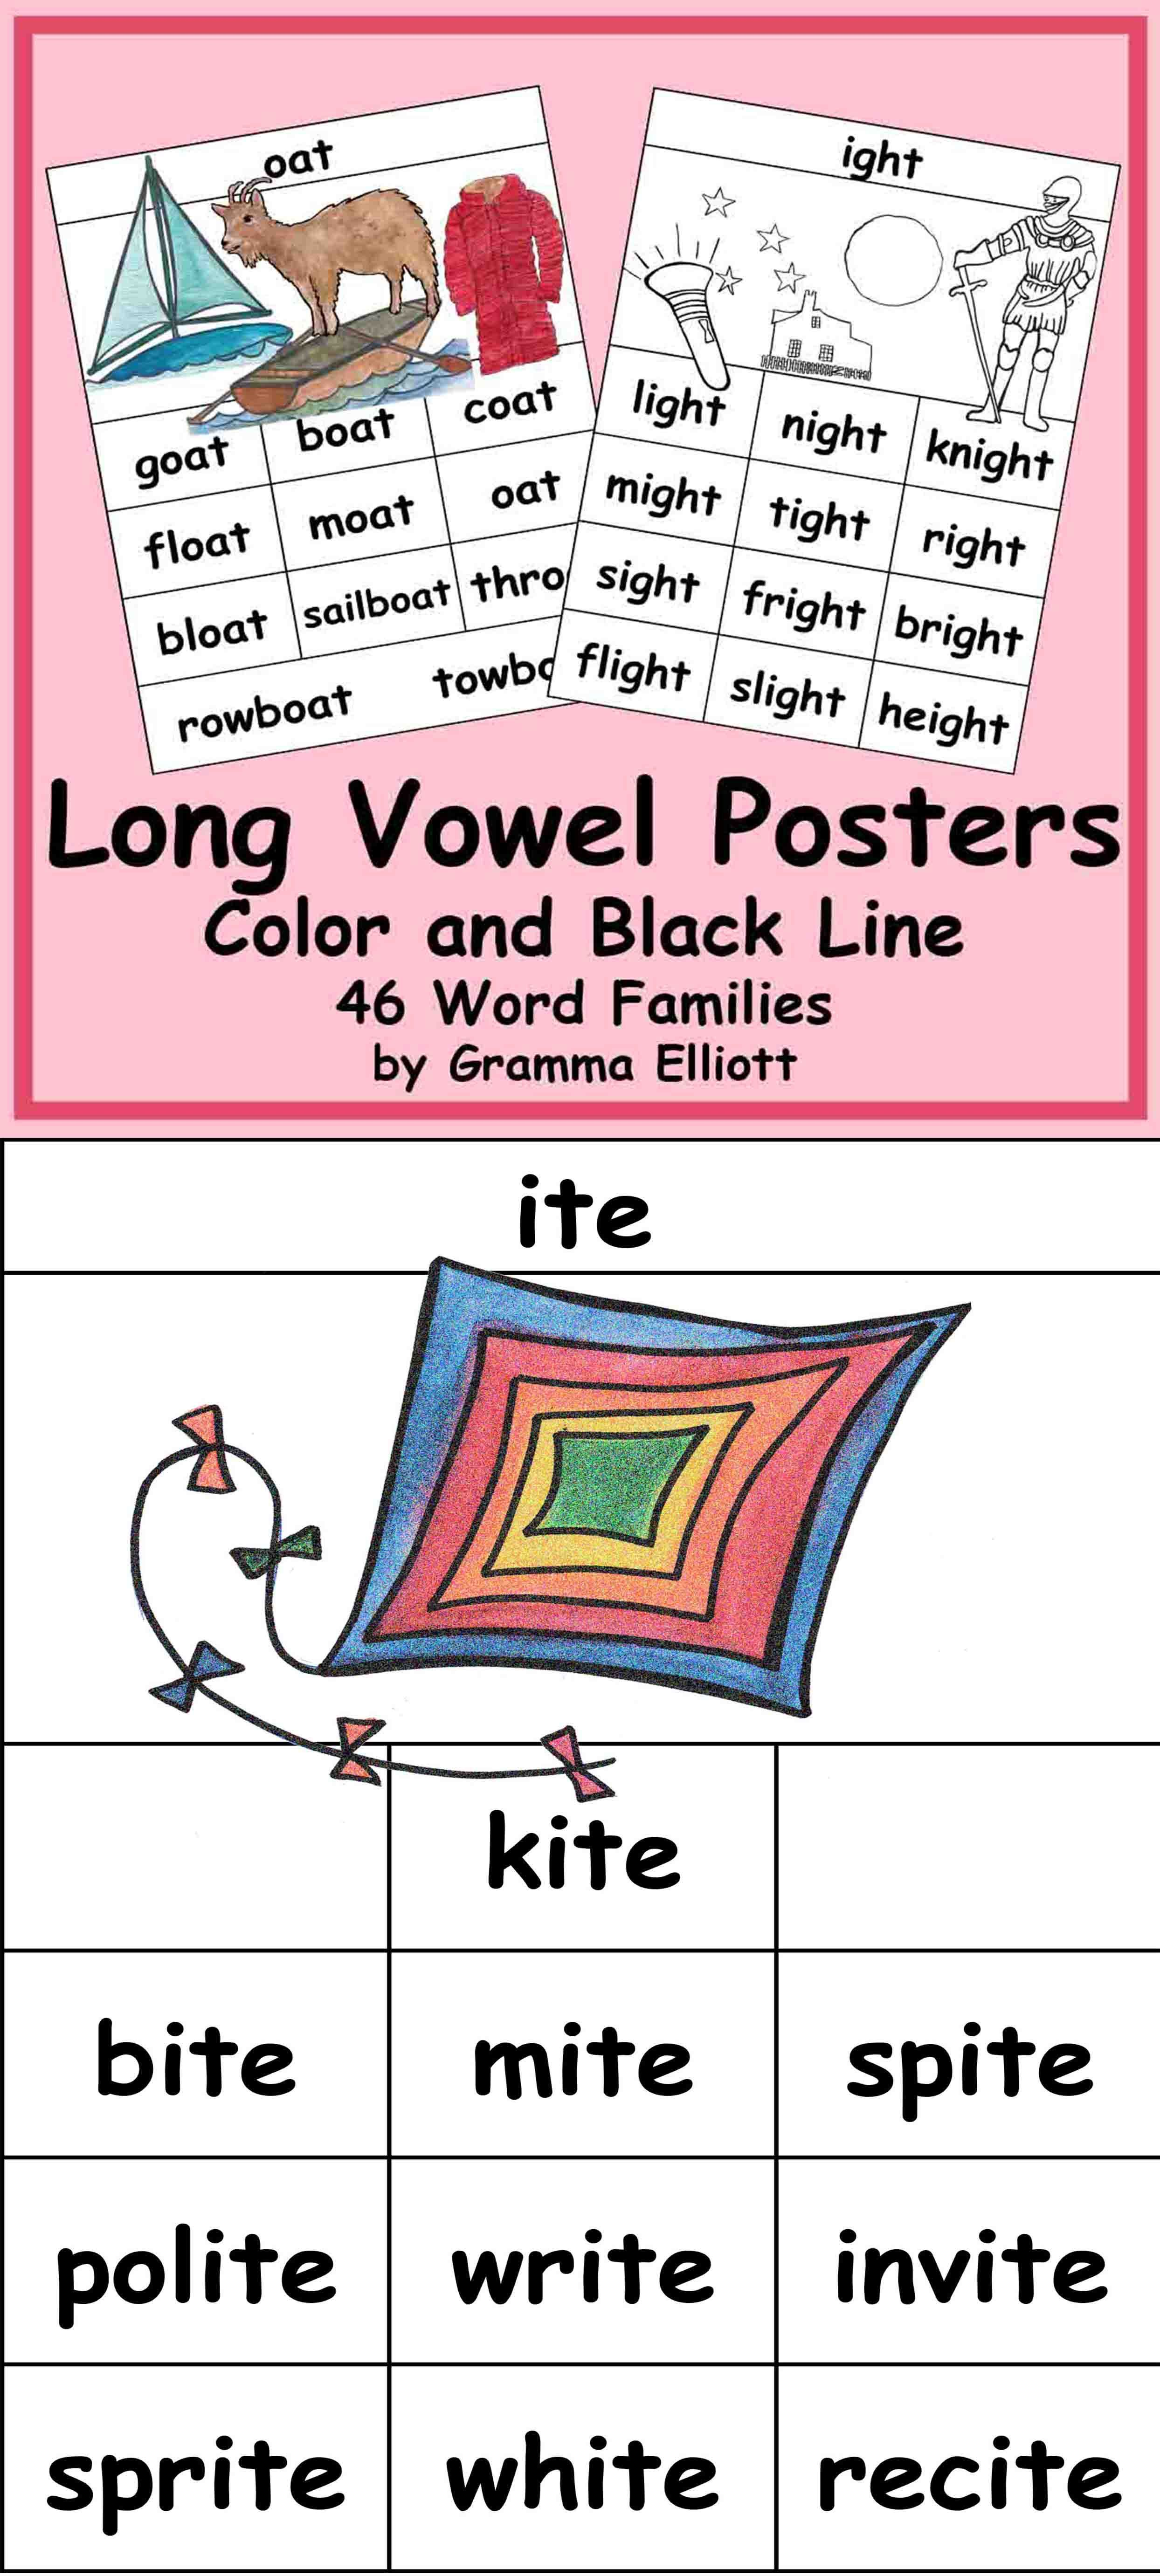 Long Vowel Word Family Posters In Color And Bw For 46 Word Families